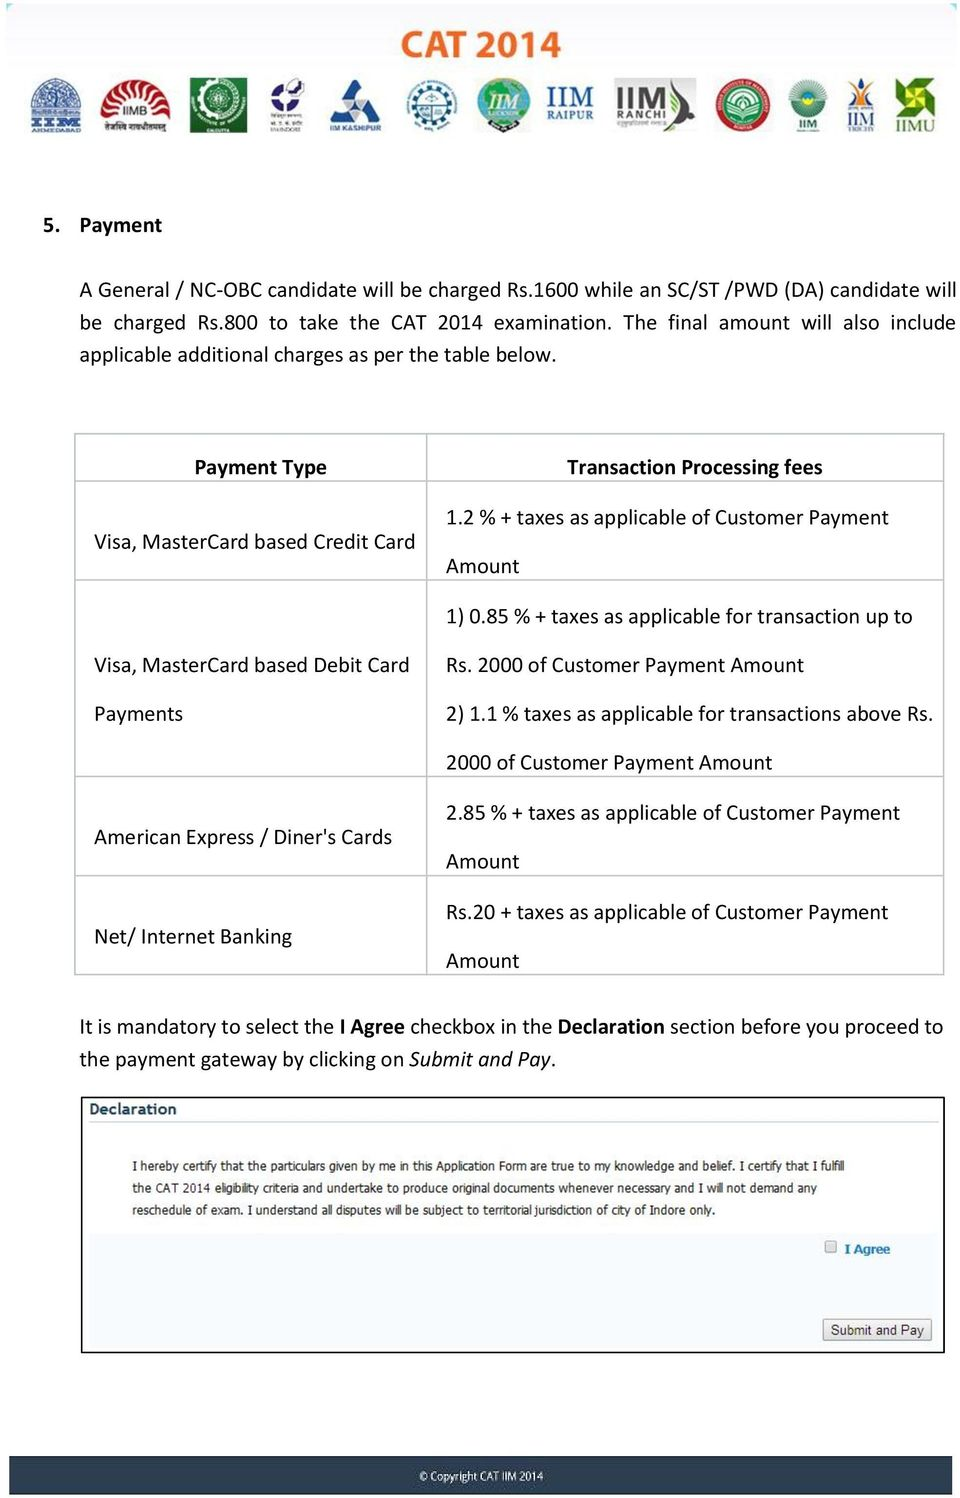 2 % + taxes as applicable of Customer Payment Amount 1) 0.85 % + taxes as applicable for transaction up to Visa, MasterCard based Debit Card Payments Rs. 2000 of Customer Payment Amount 2) 1.